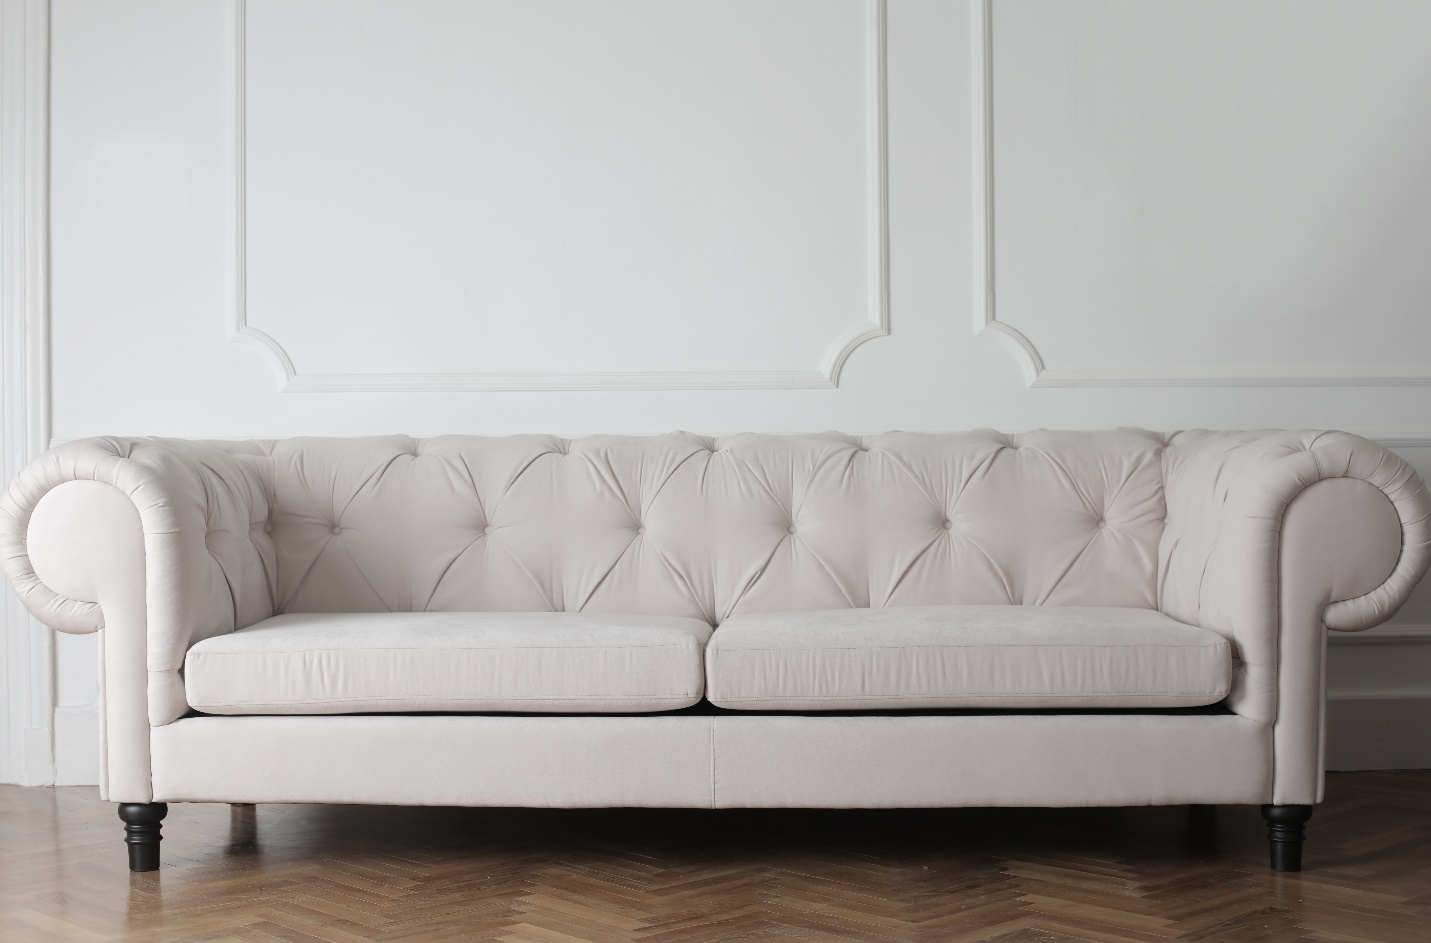 The Problems with Renting Furniture